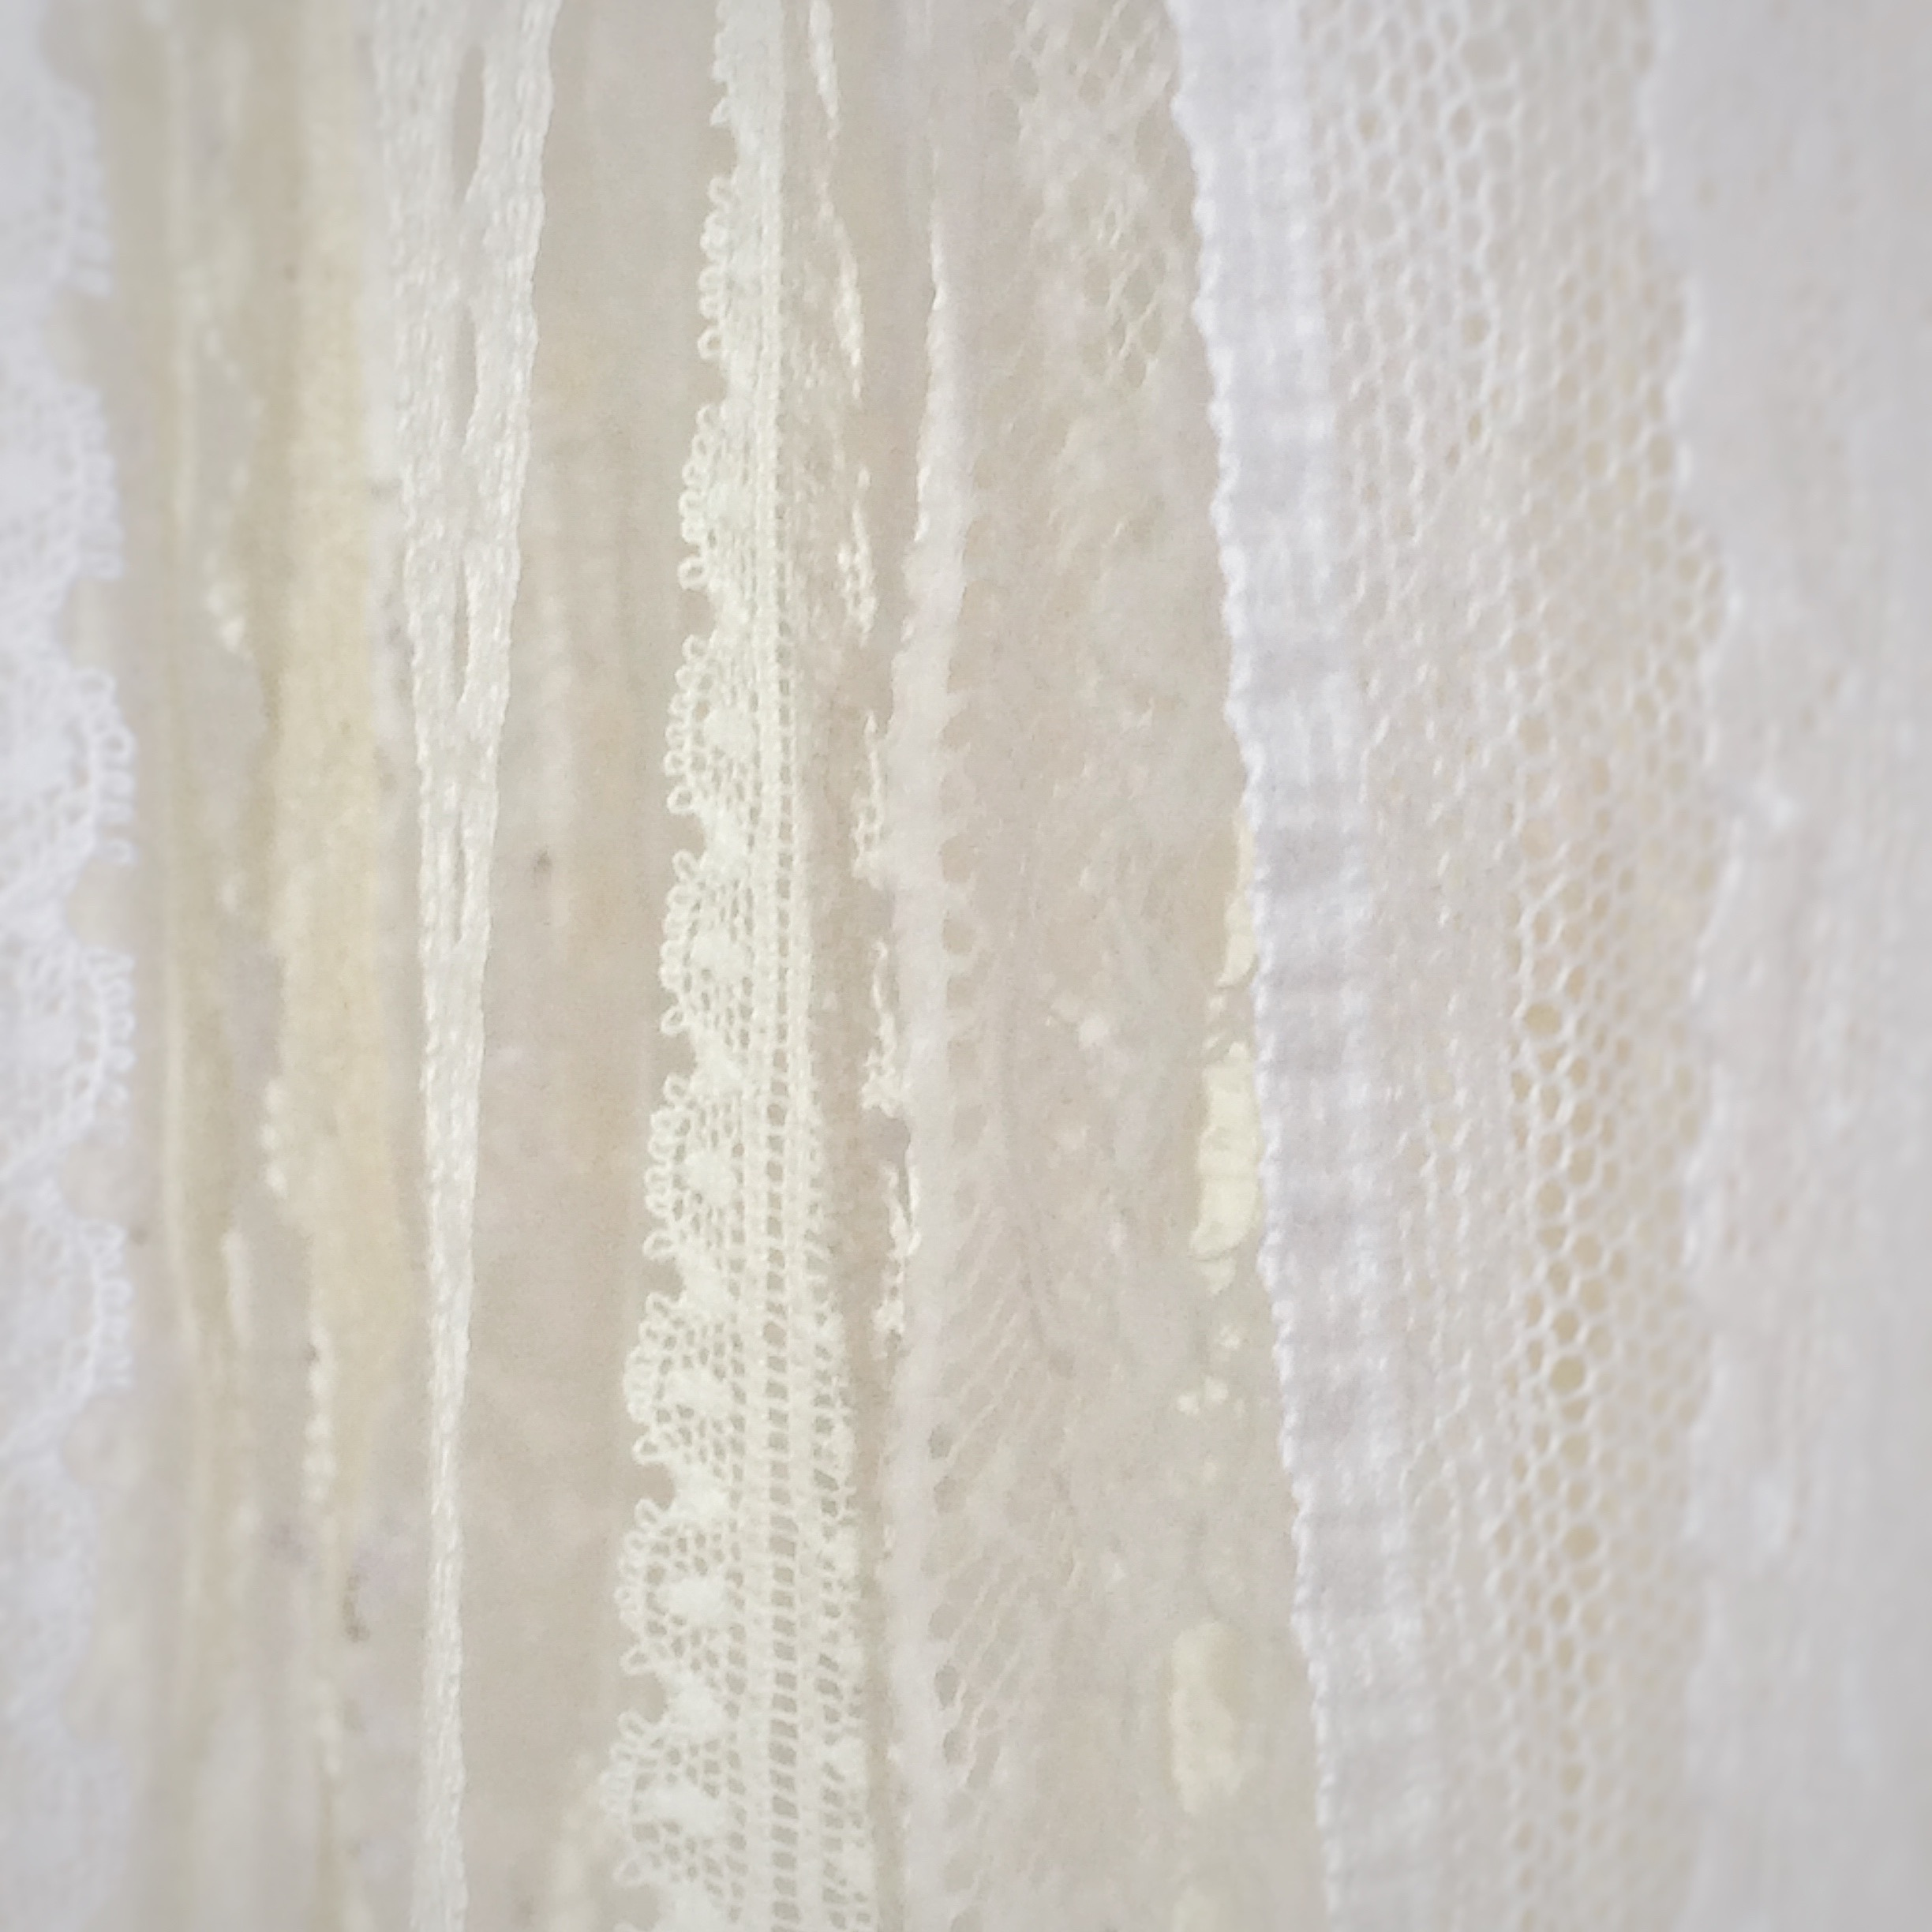 Cluny lace edgings